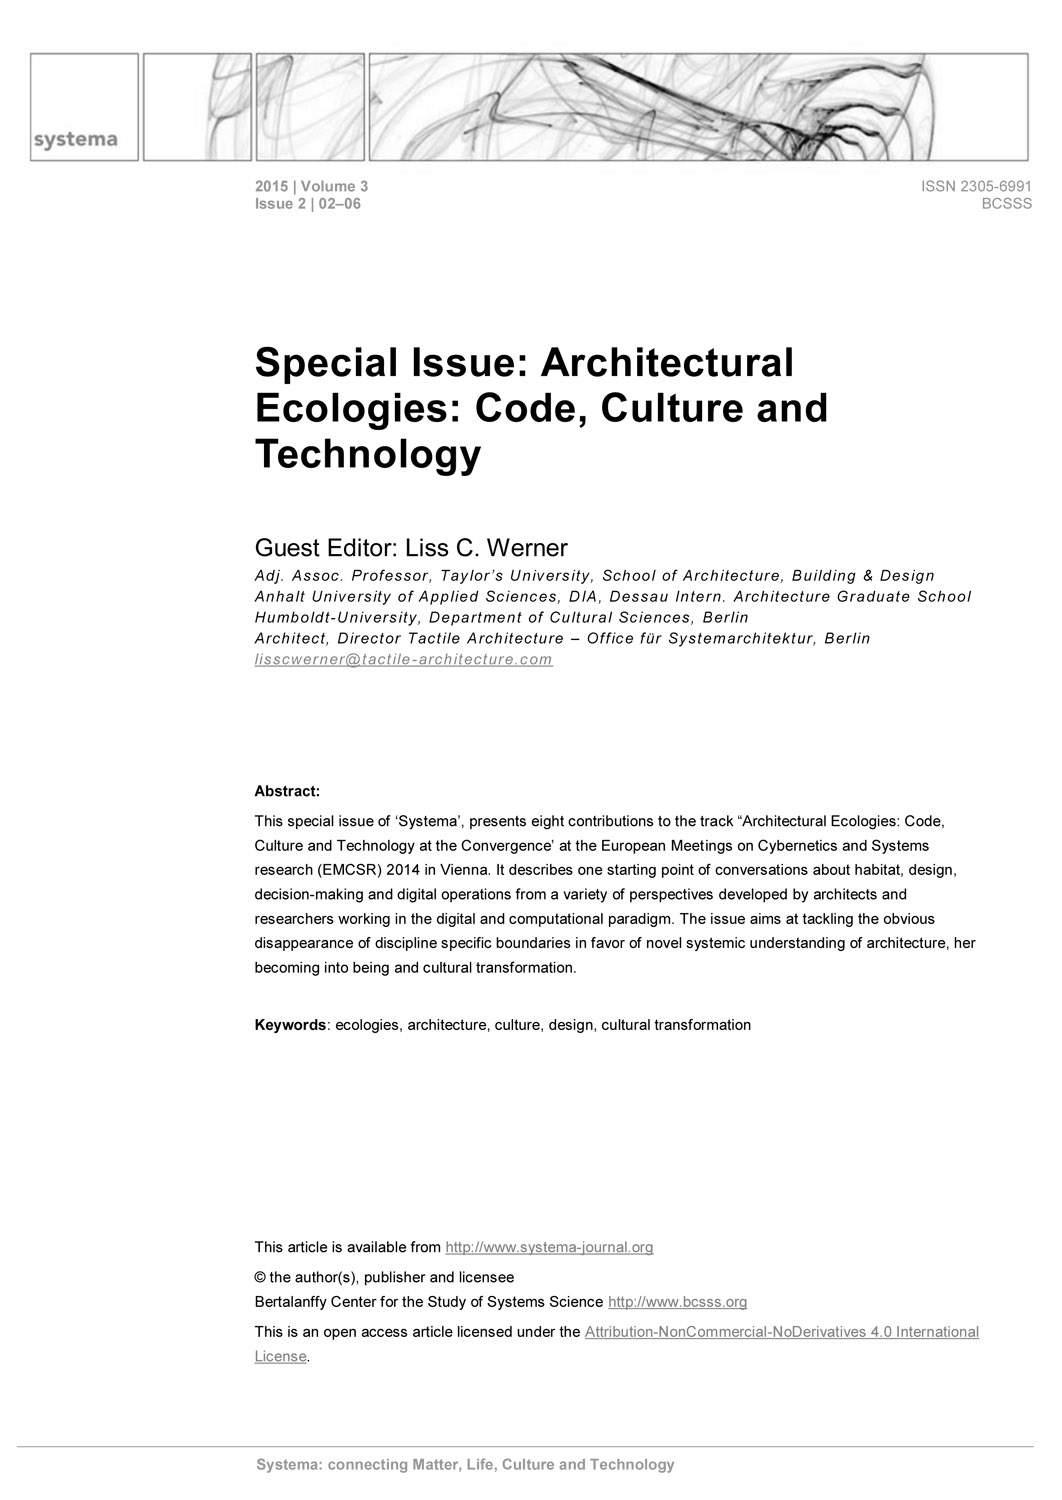 LCWerner_Architectural_Ecologies_Systema_TEMP-feature